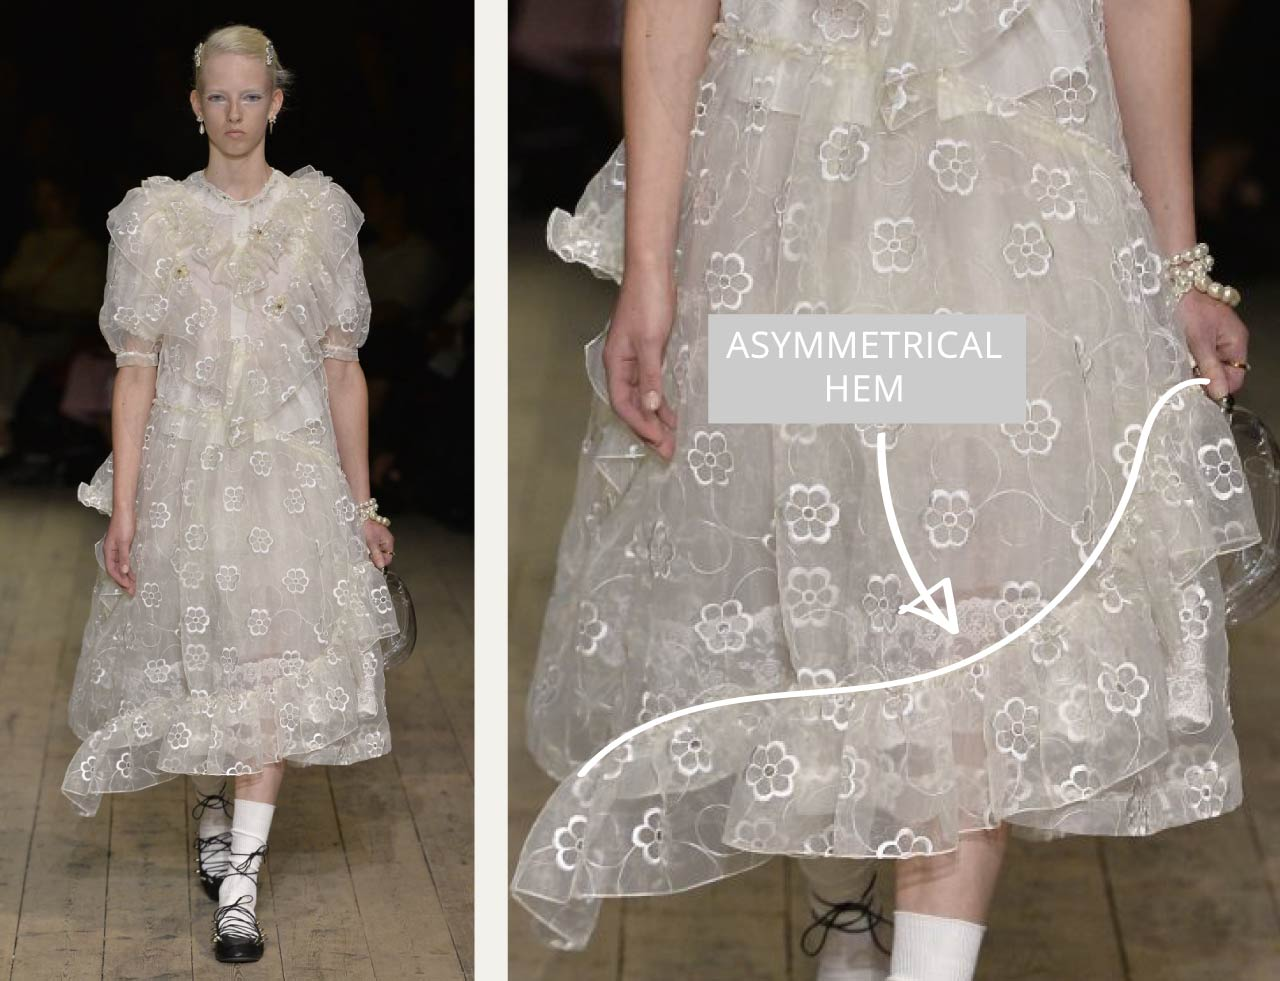 Translucent Layers at Simone Rocha | The Cutting Class. Asymmetrical hem in dress design.